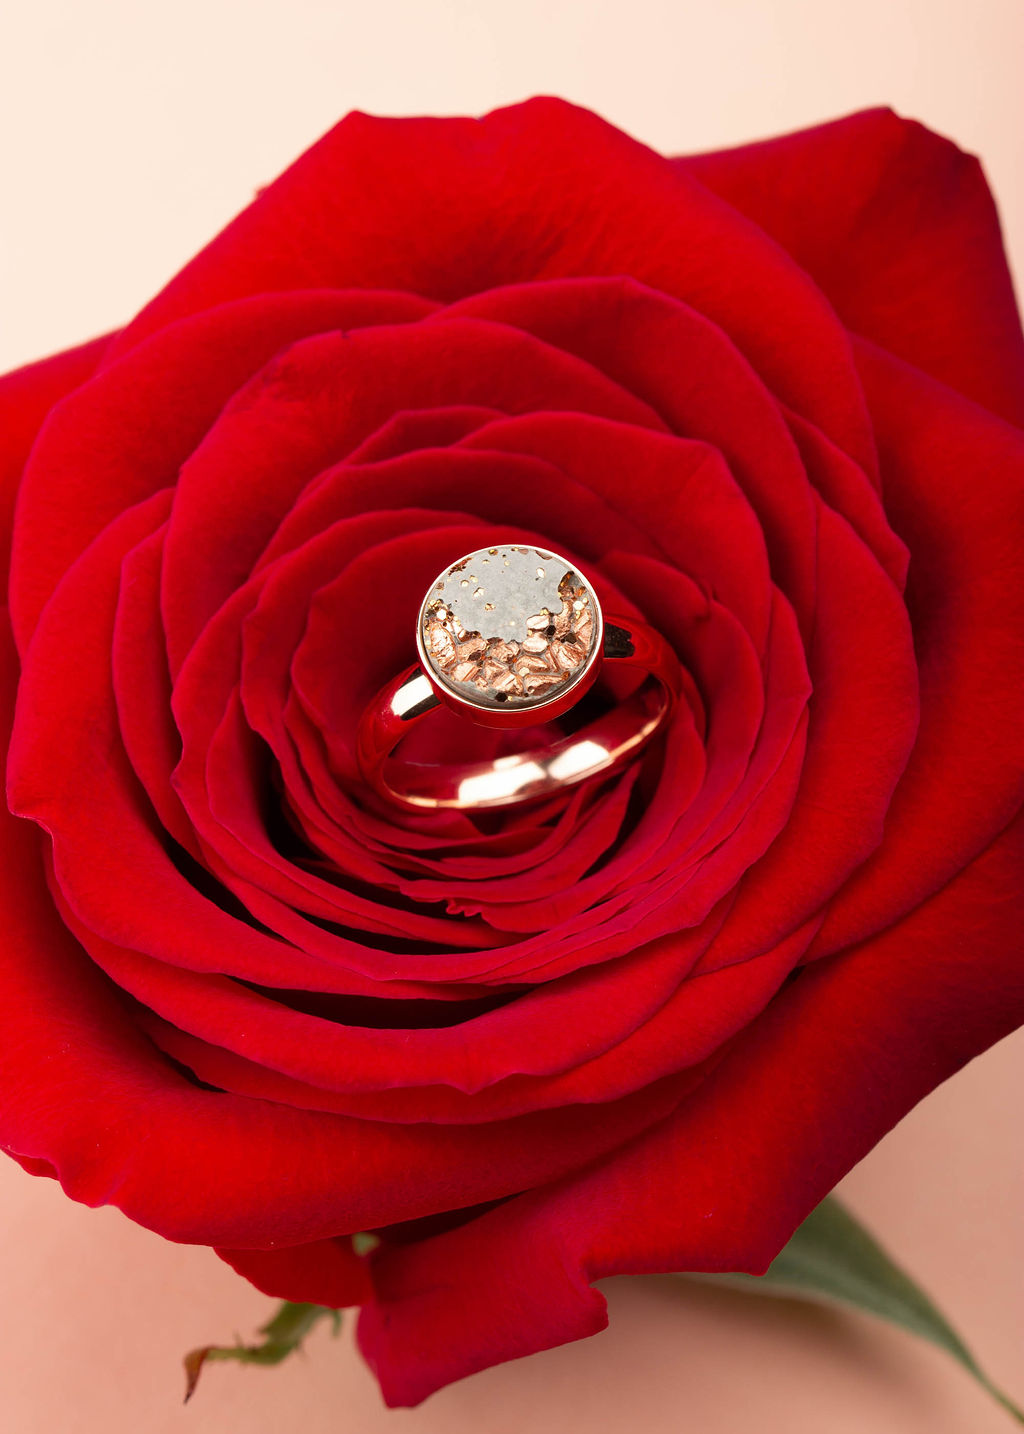 Jewelry Photography with Rose